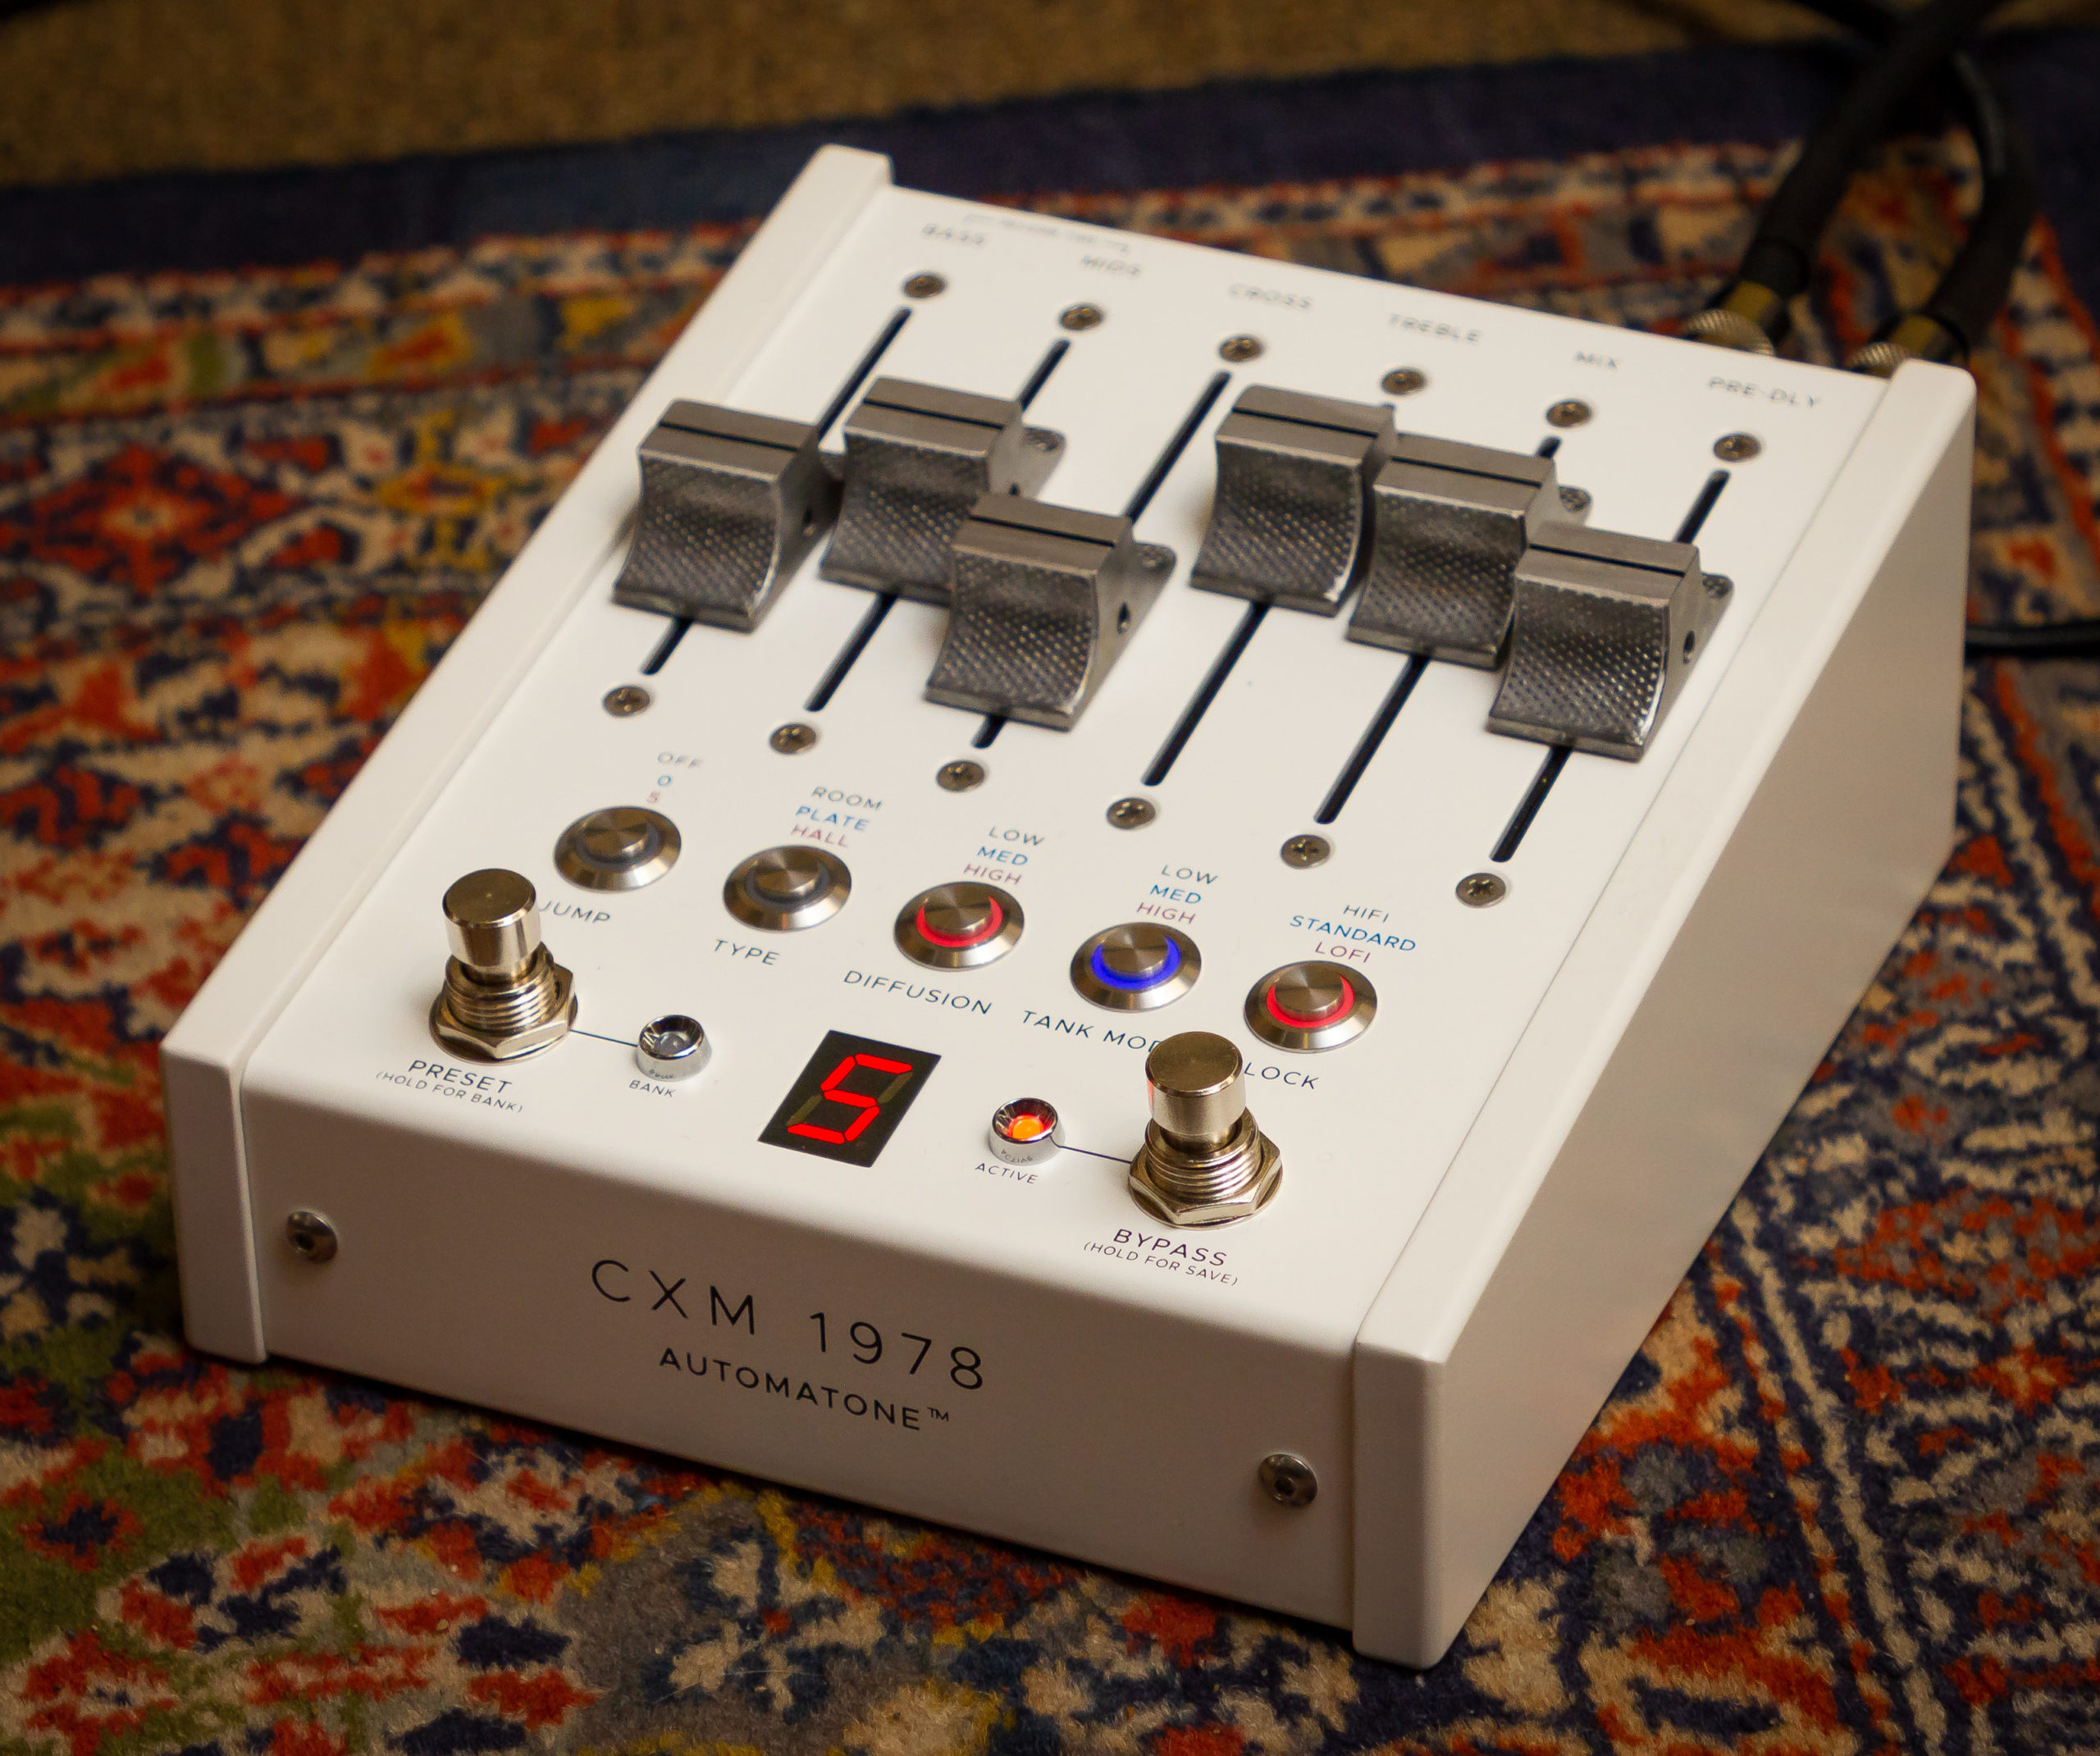 Chase Bliss Audio - AUTOMATONE CXM 1978